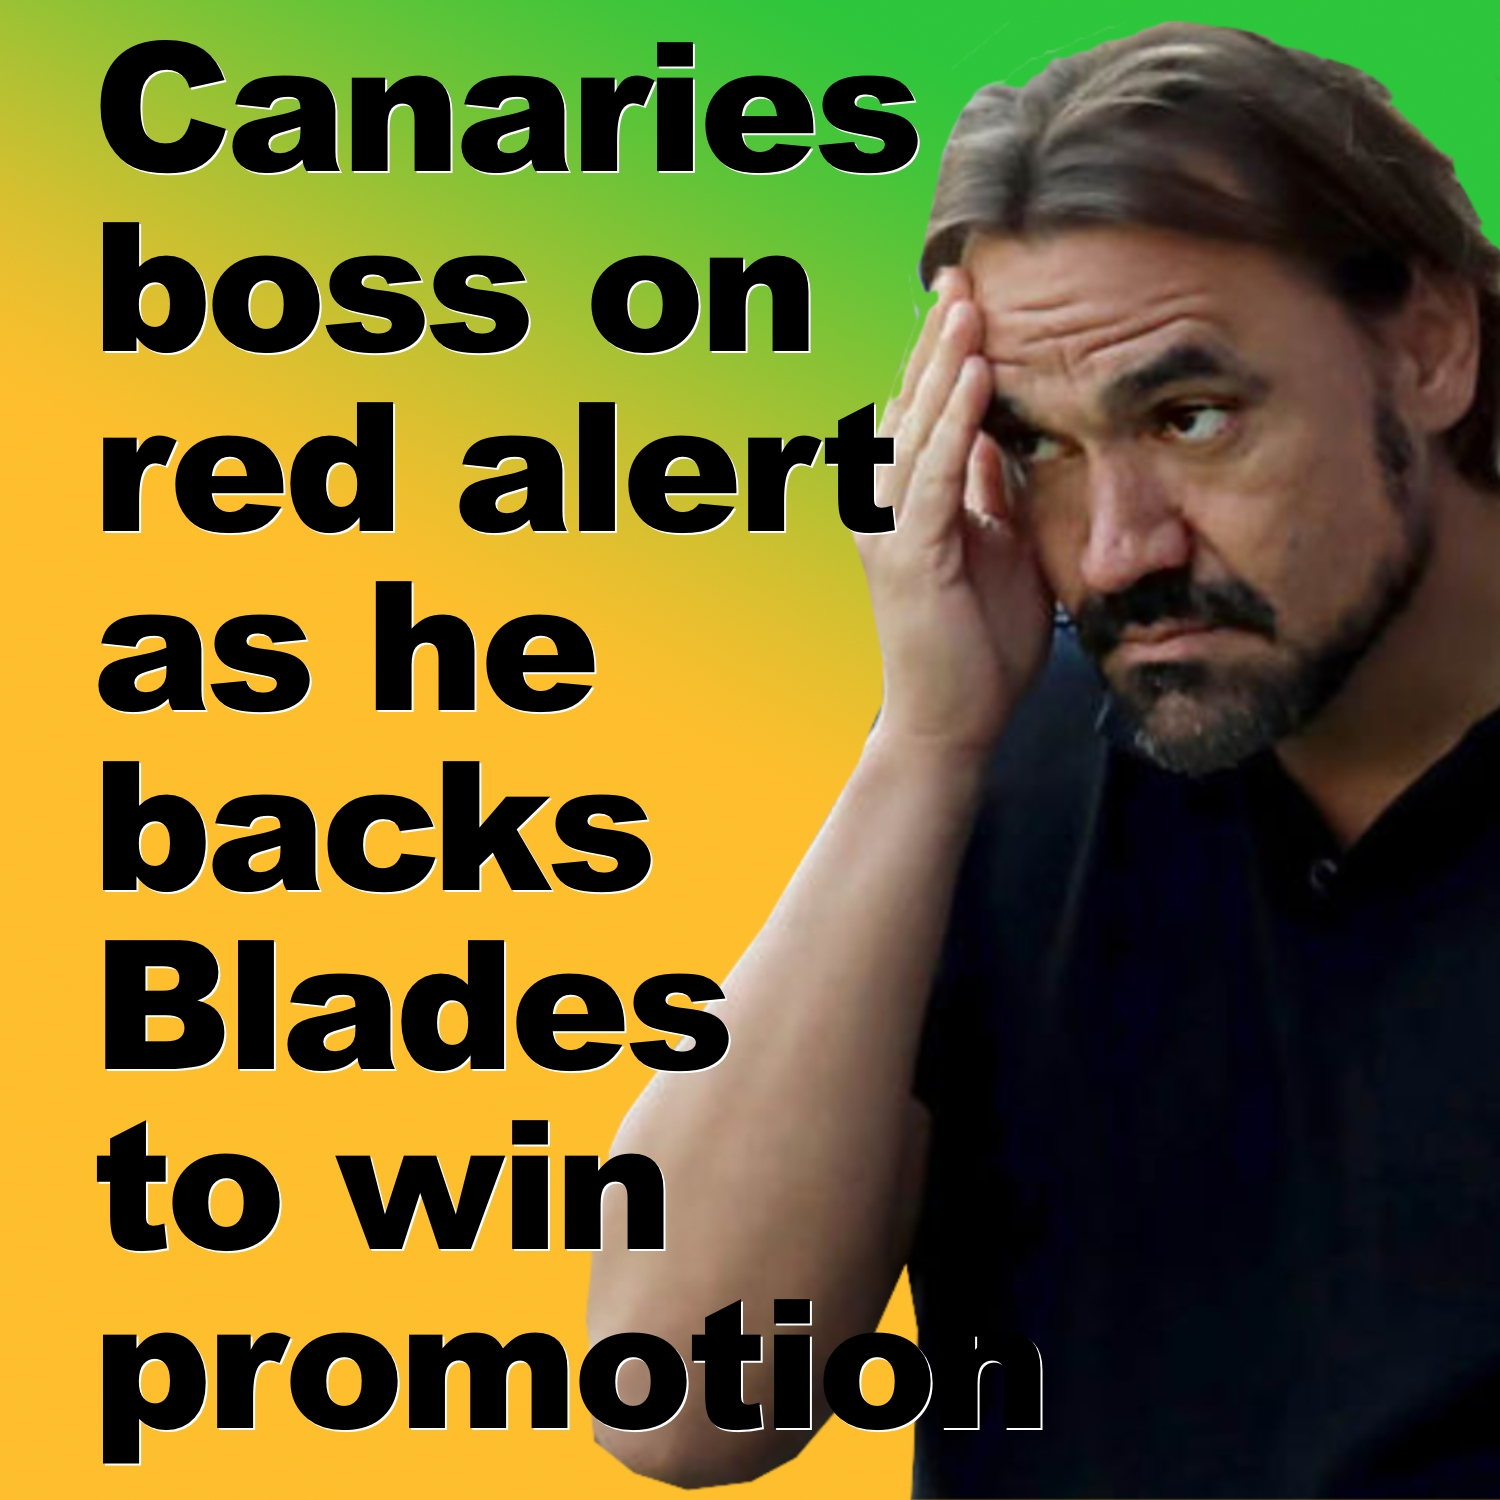 Norwich boss on red alert as he  backs Blades to win promotion